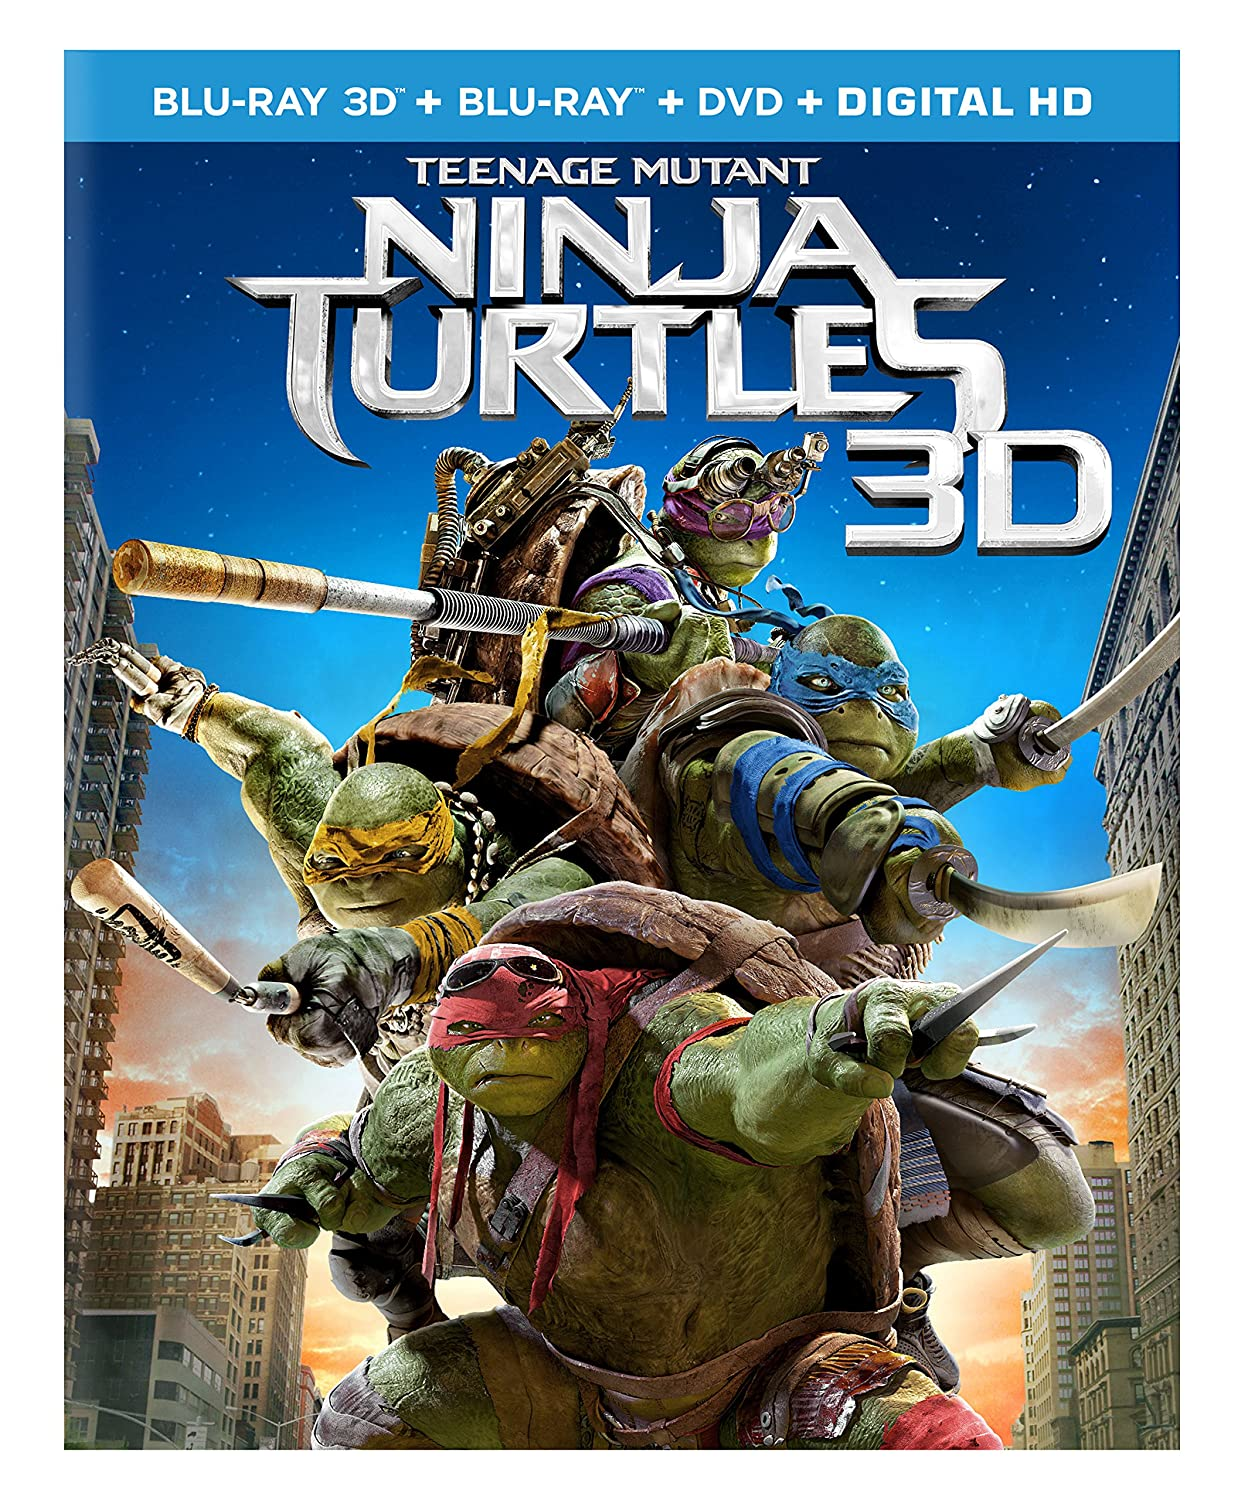 Download Teenage Mutant Ninja Turtles 2014 BDRip x264-SPARKS